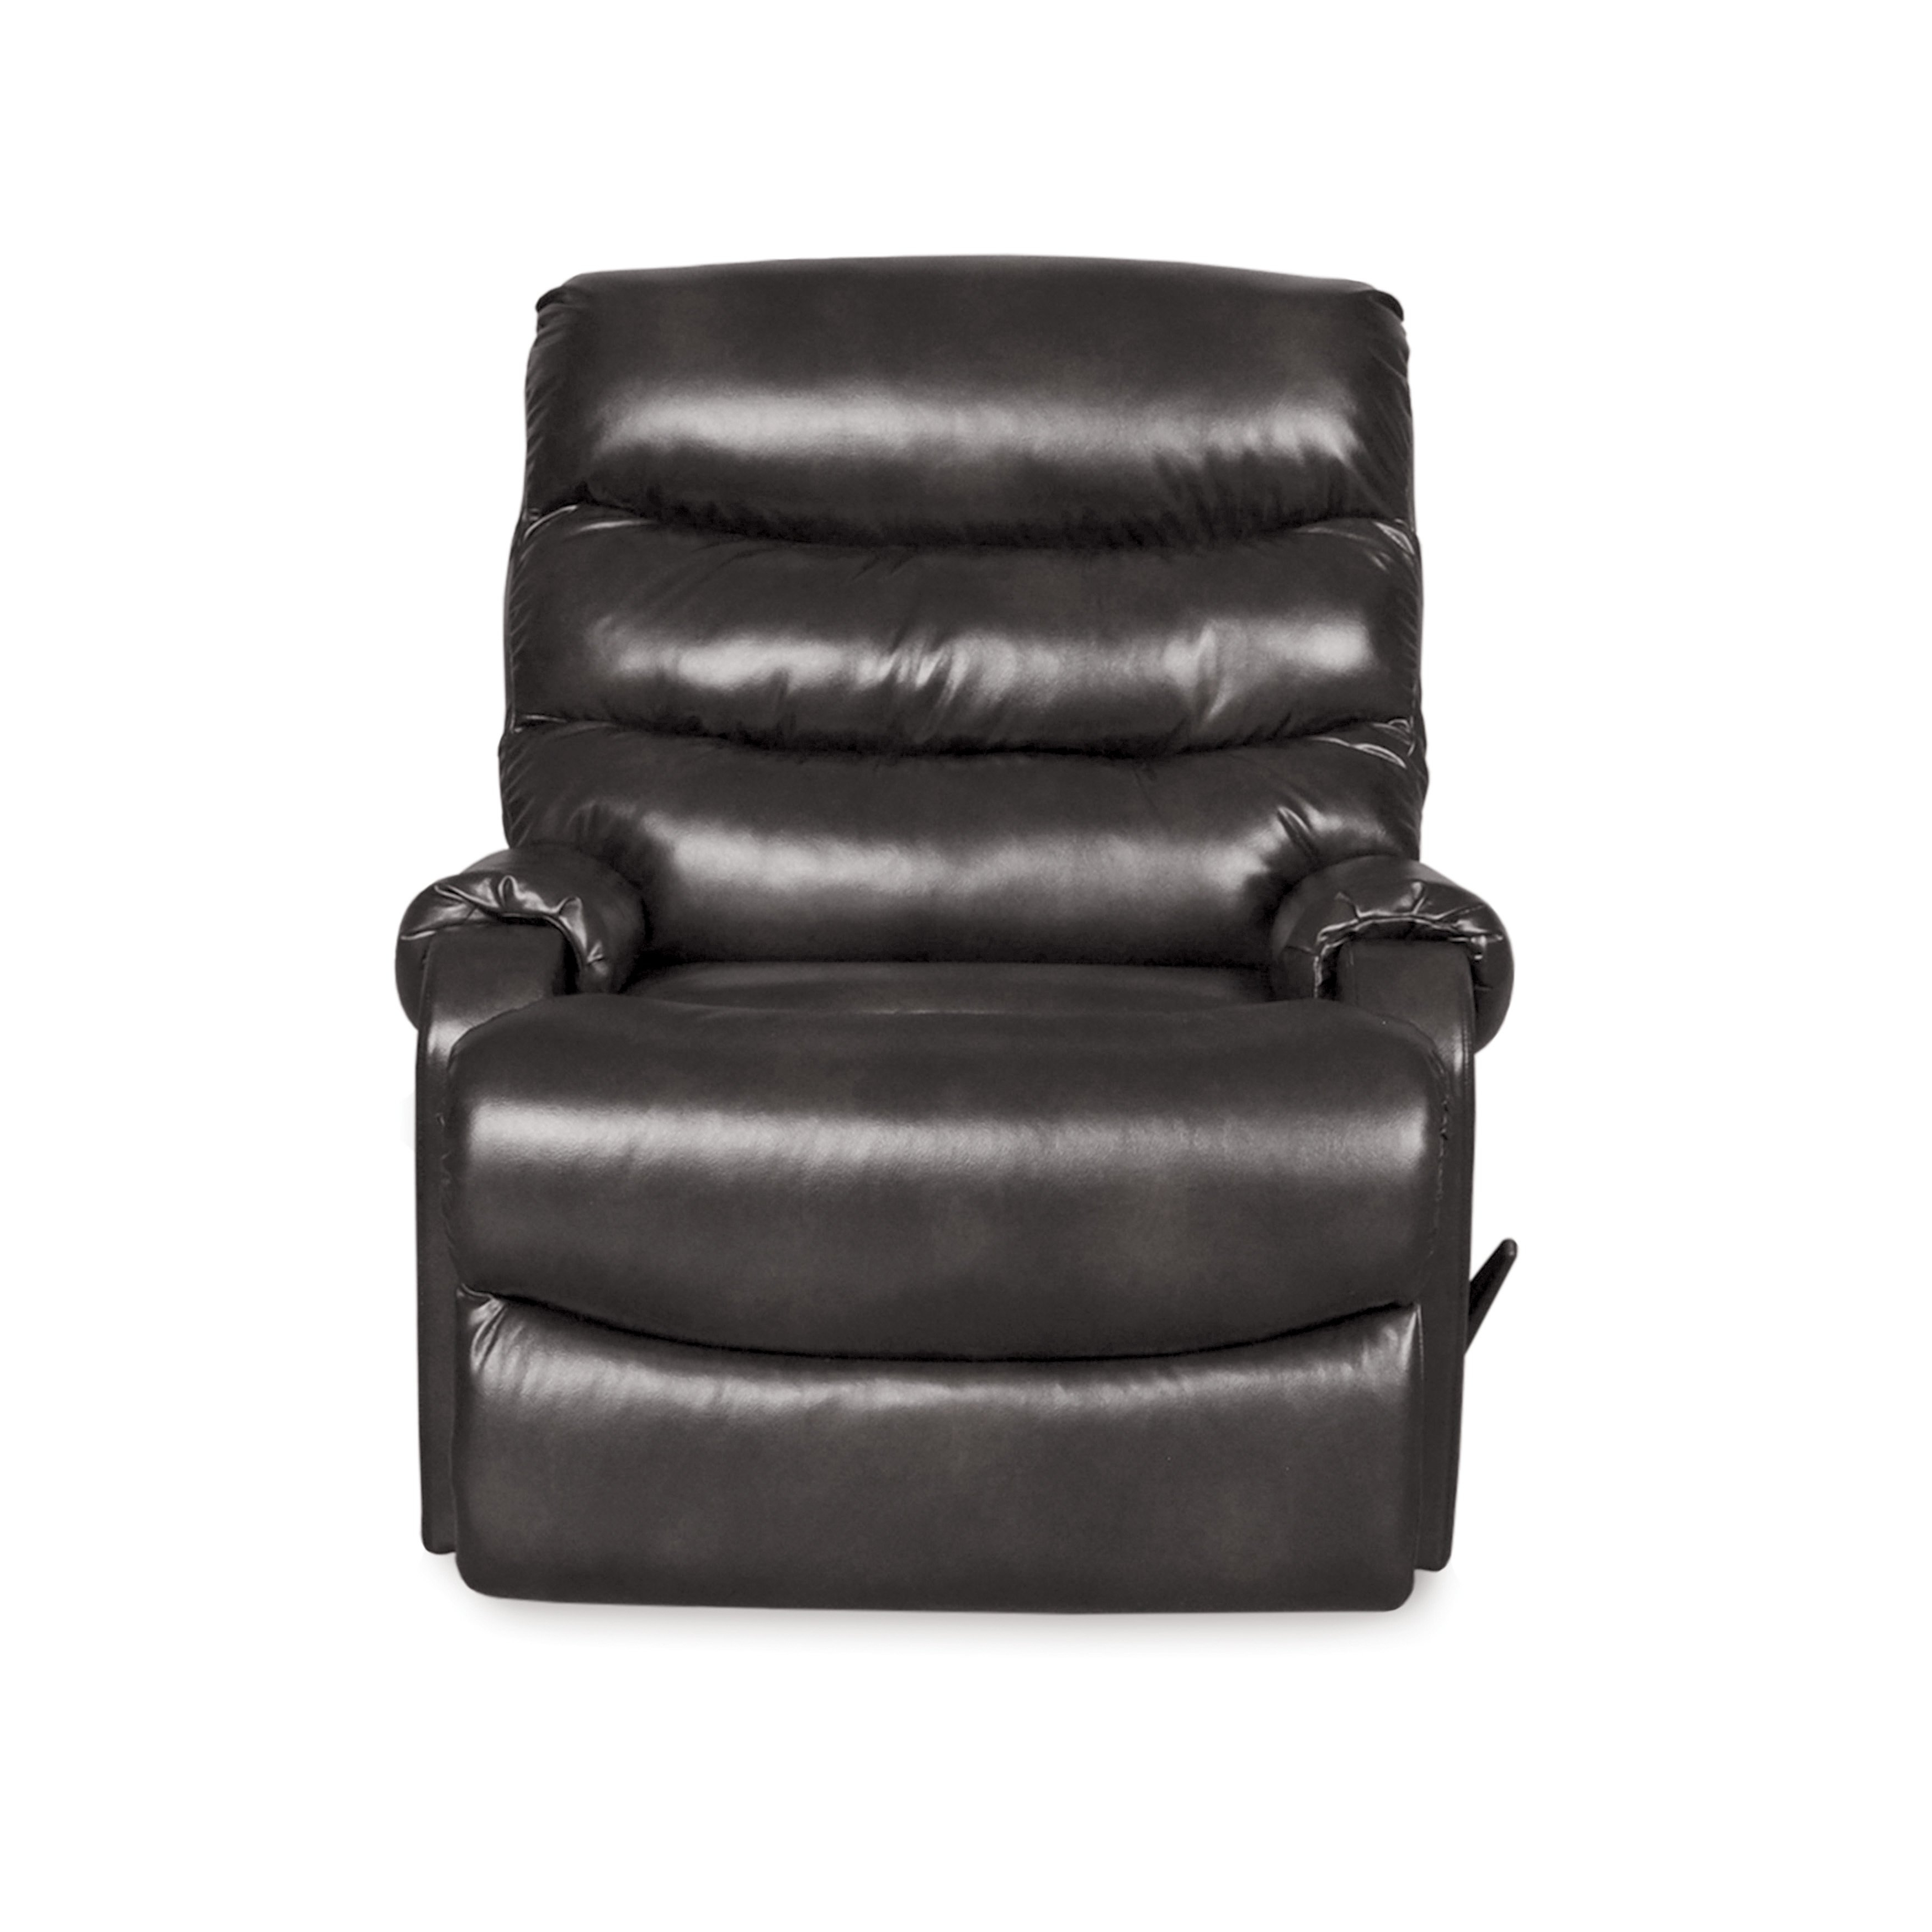 Latest Gannon Truffle Power Swivel Recliners Regarding Shop Bailey Glider Recliner – Free Shipping Today – Overstock (View 8 of 20)